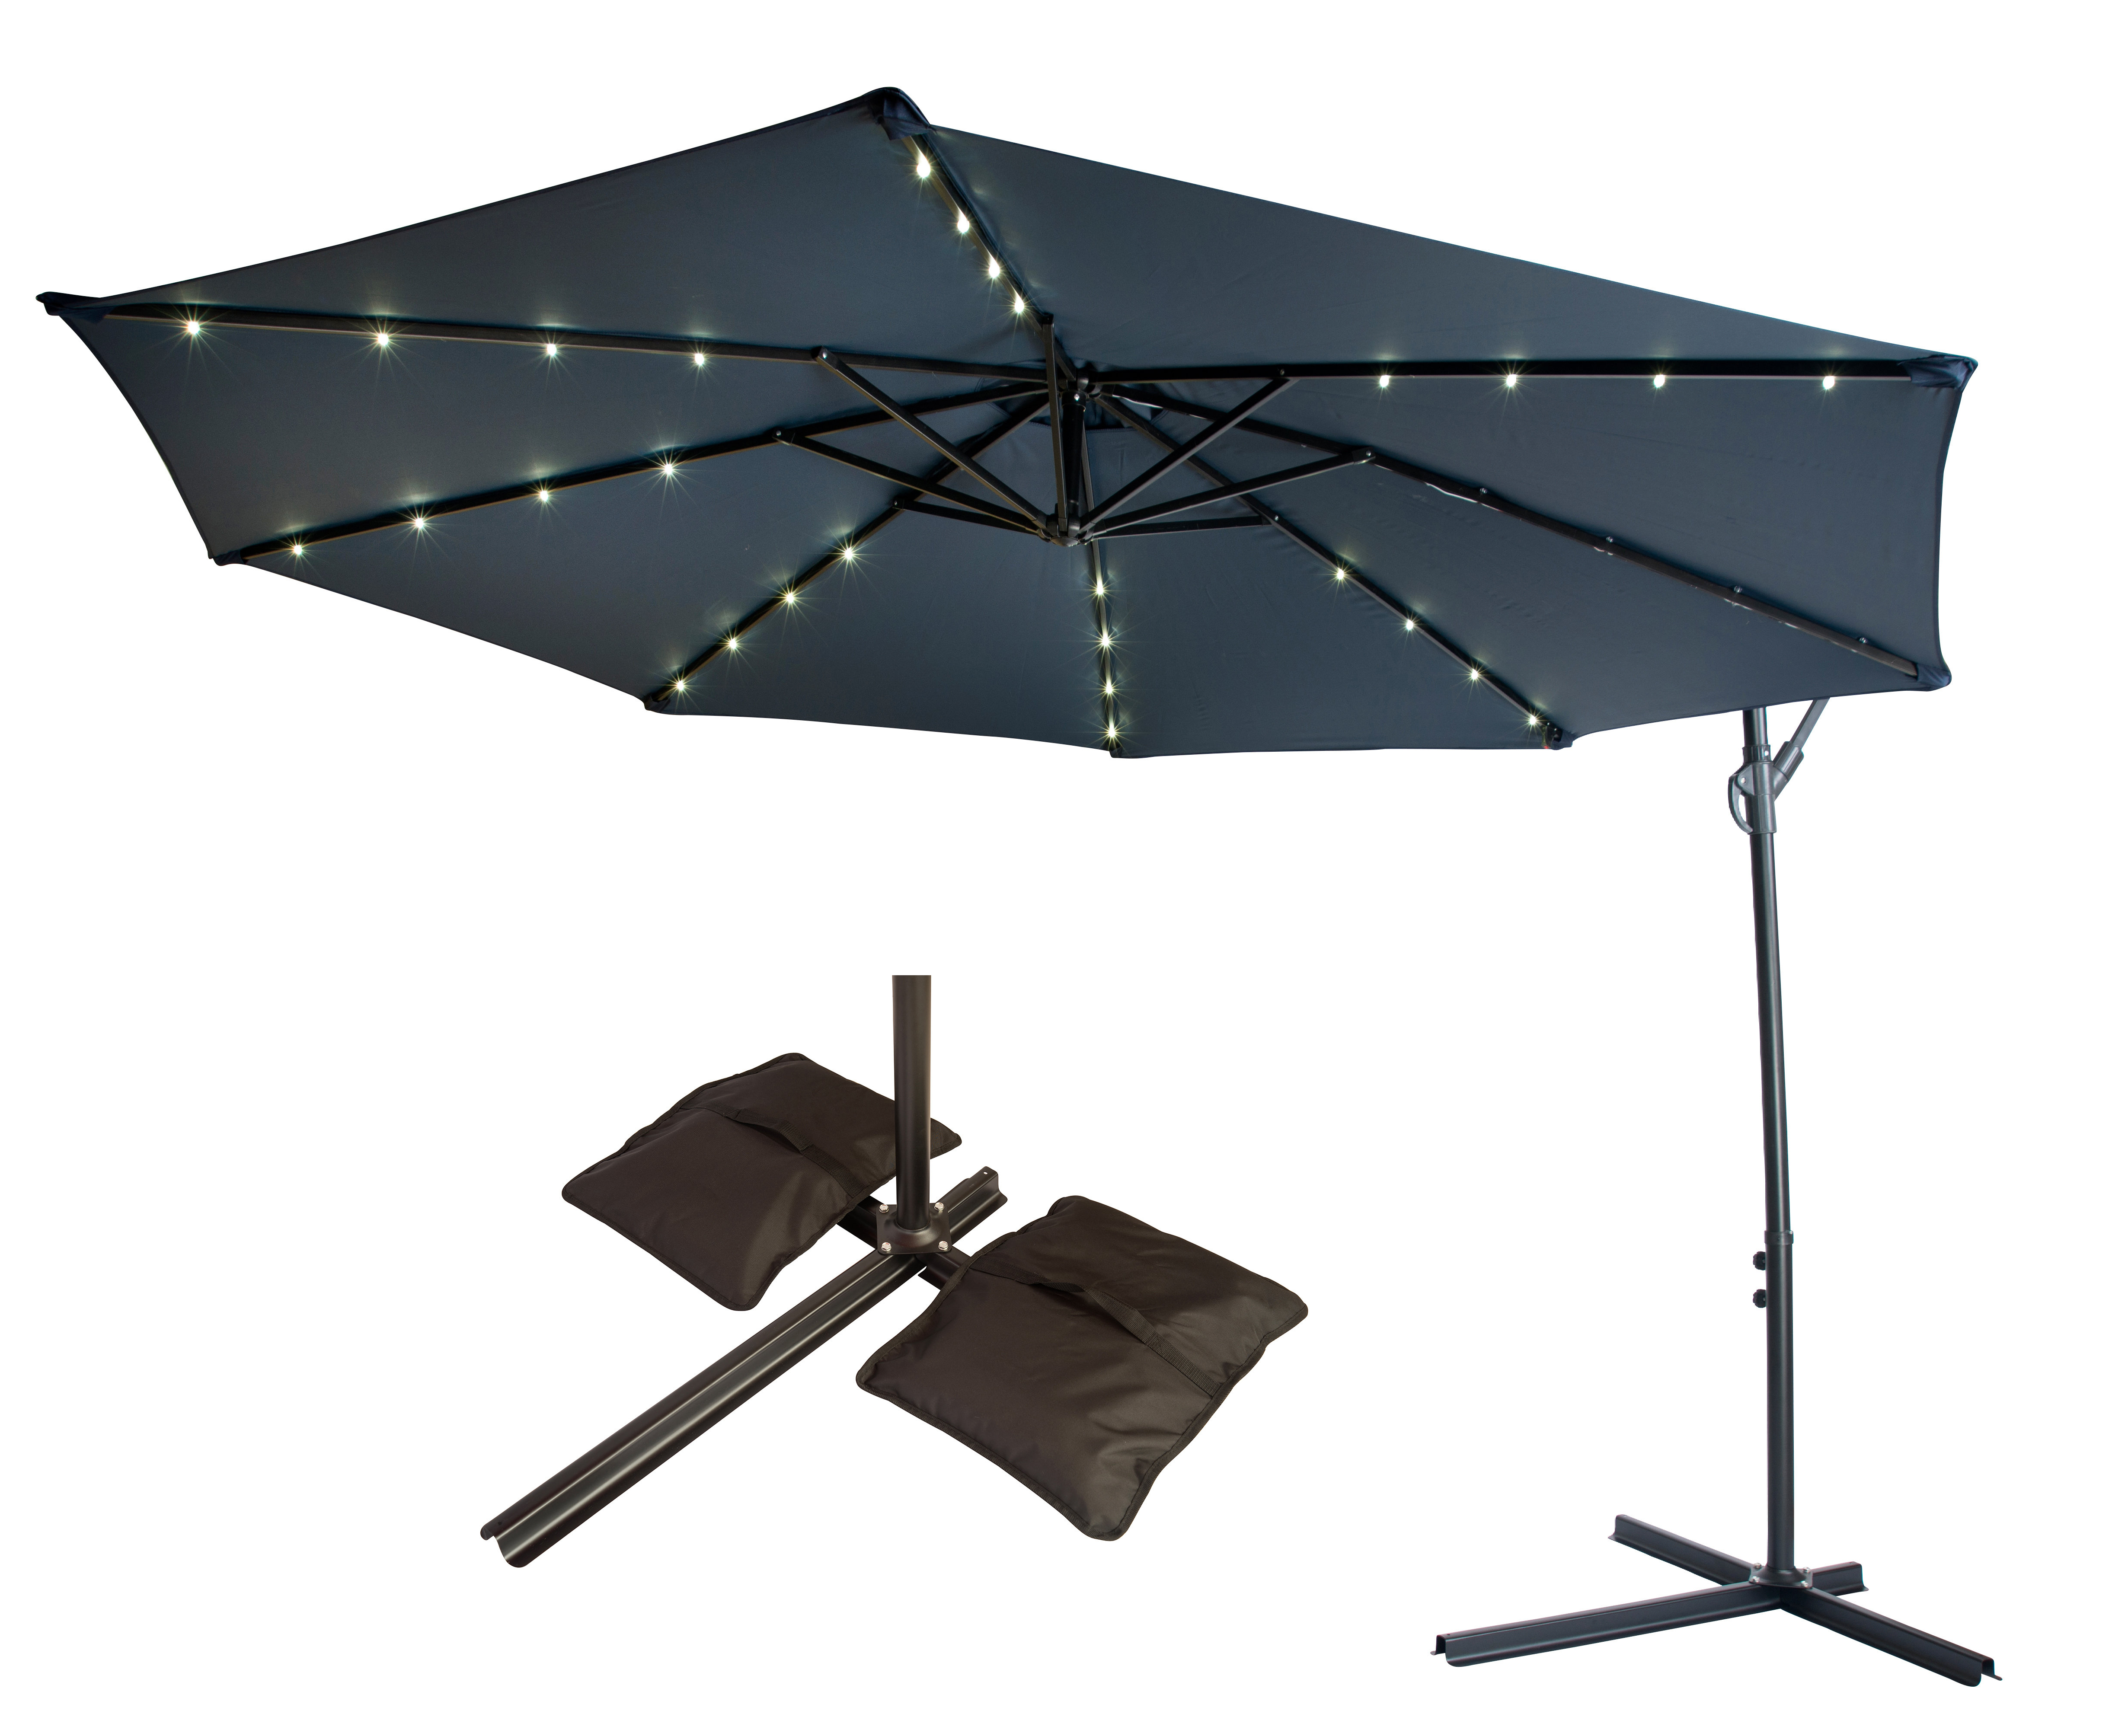 Trendy 10' Cantilever Umbrella With Jaelynn Cantilever Umbrellas (View 14 of 20)